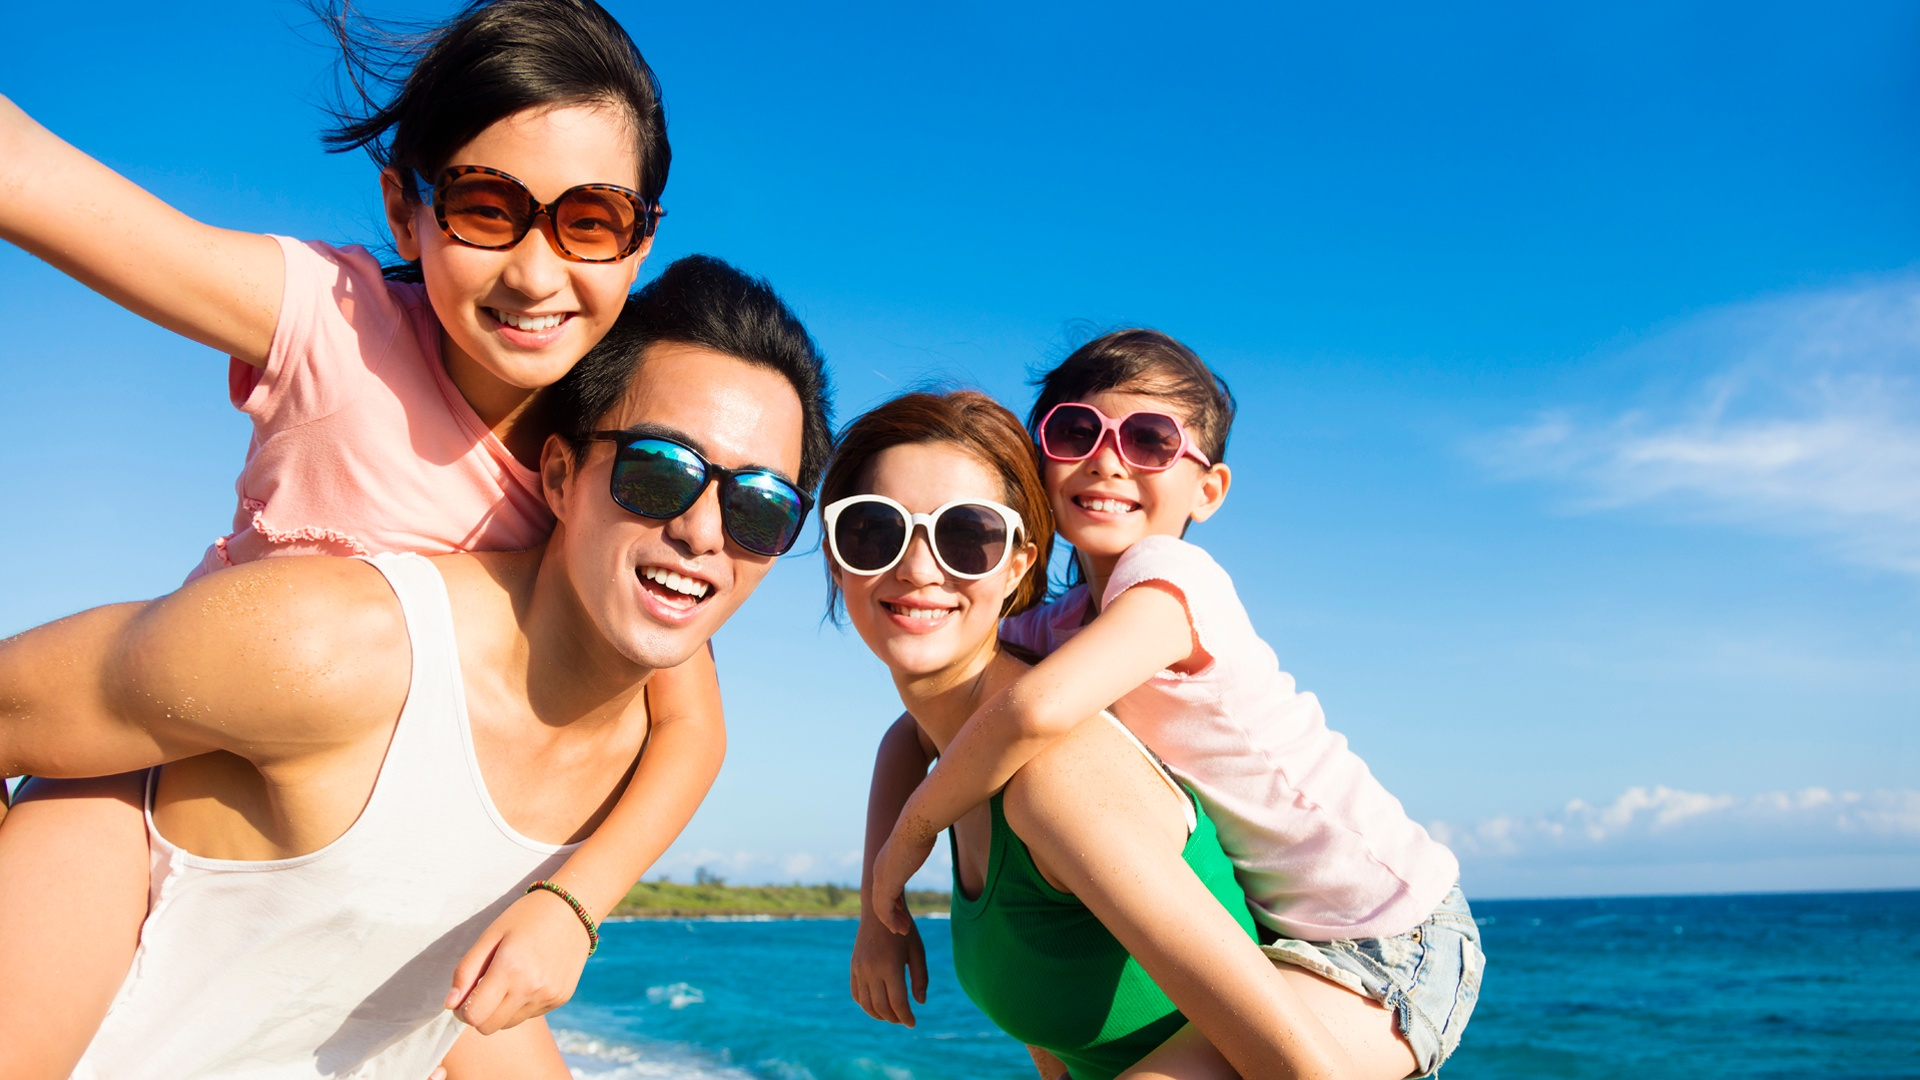 Chinese Tourism Marketing tips to appeal to the Chinese traveller